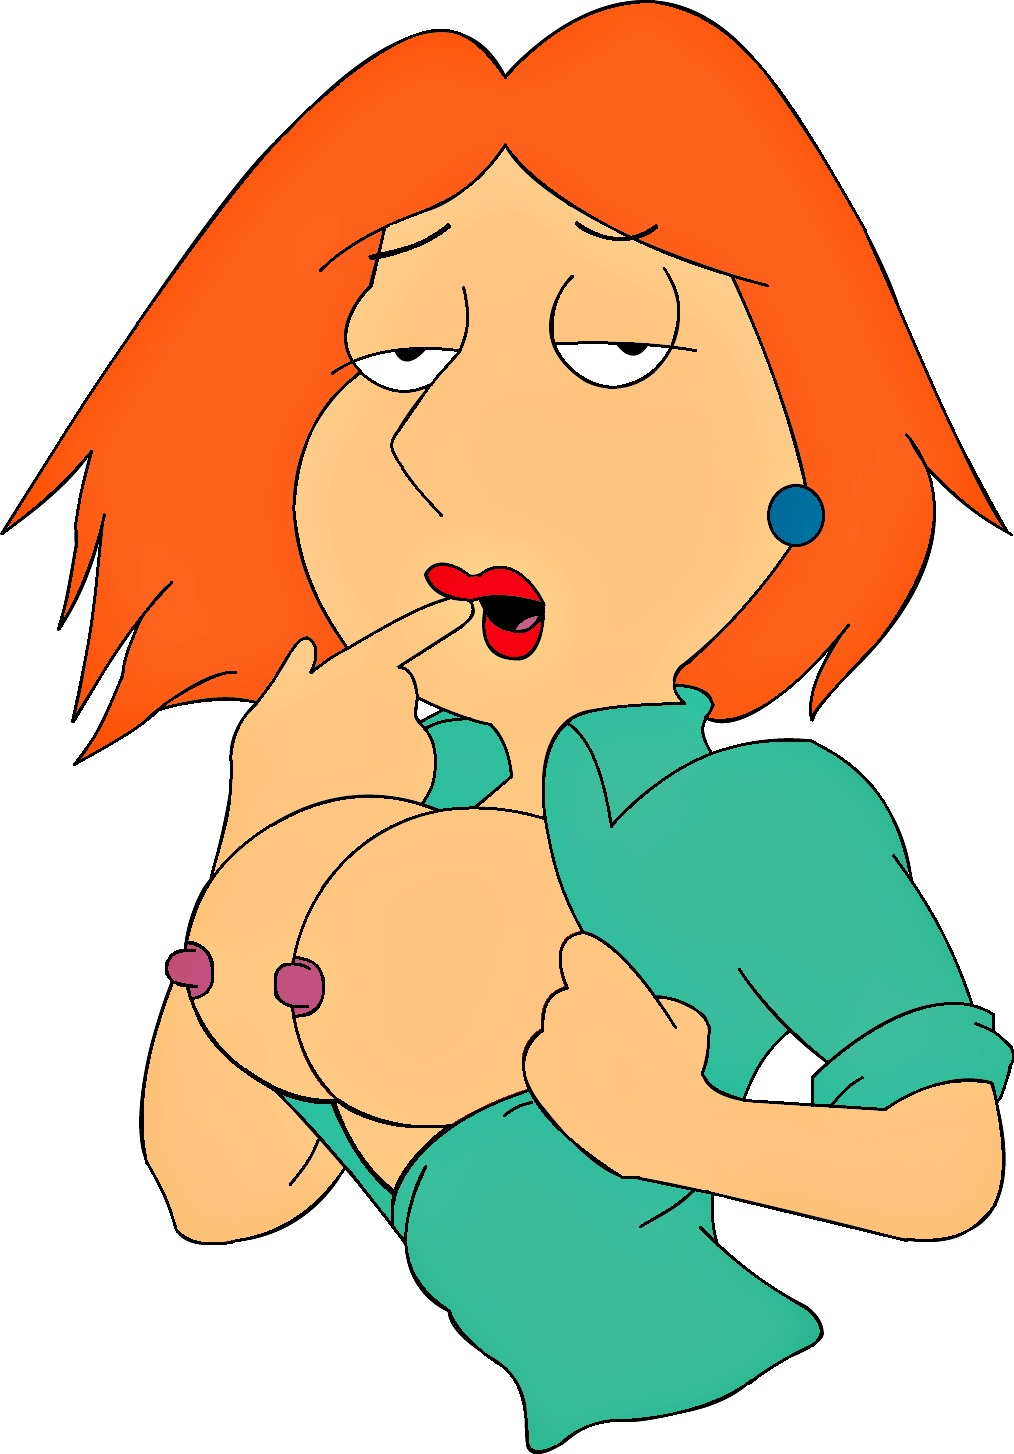 girl-porno-lois-griffin-tongue-kiss-chick-clip-dick